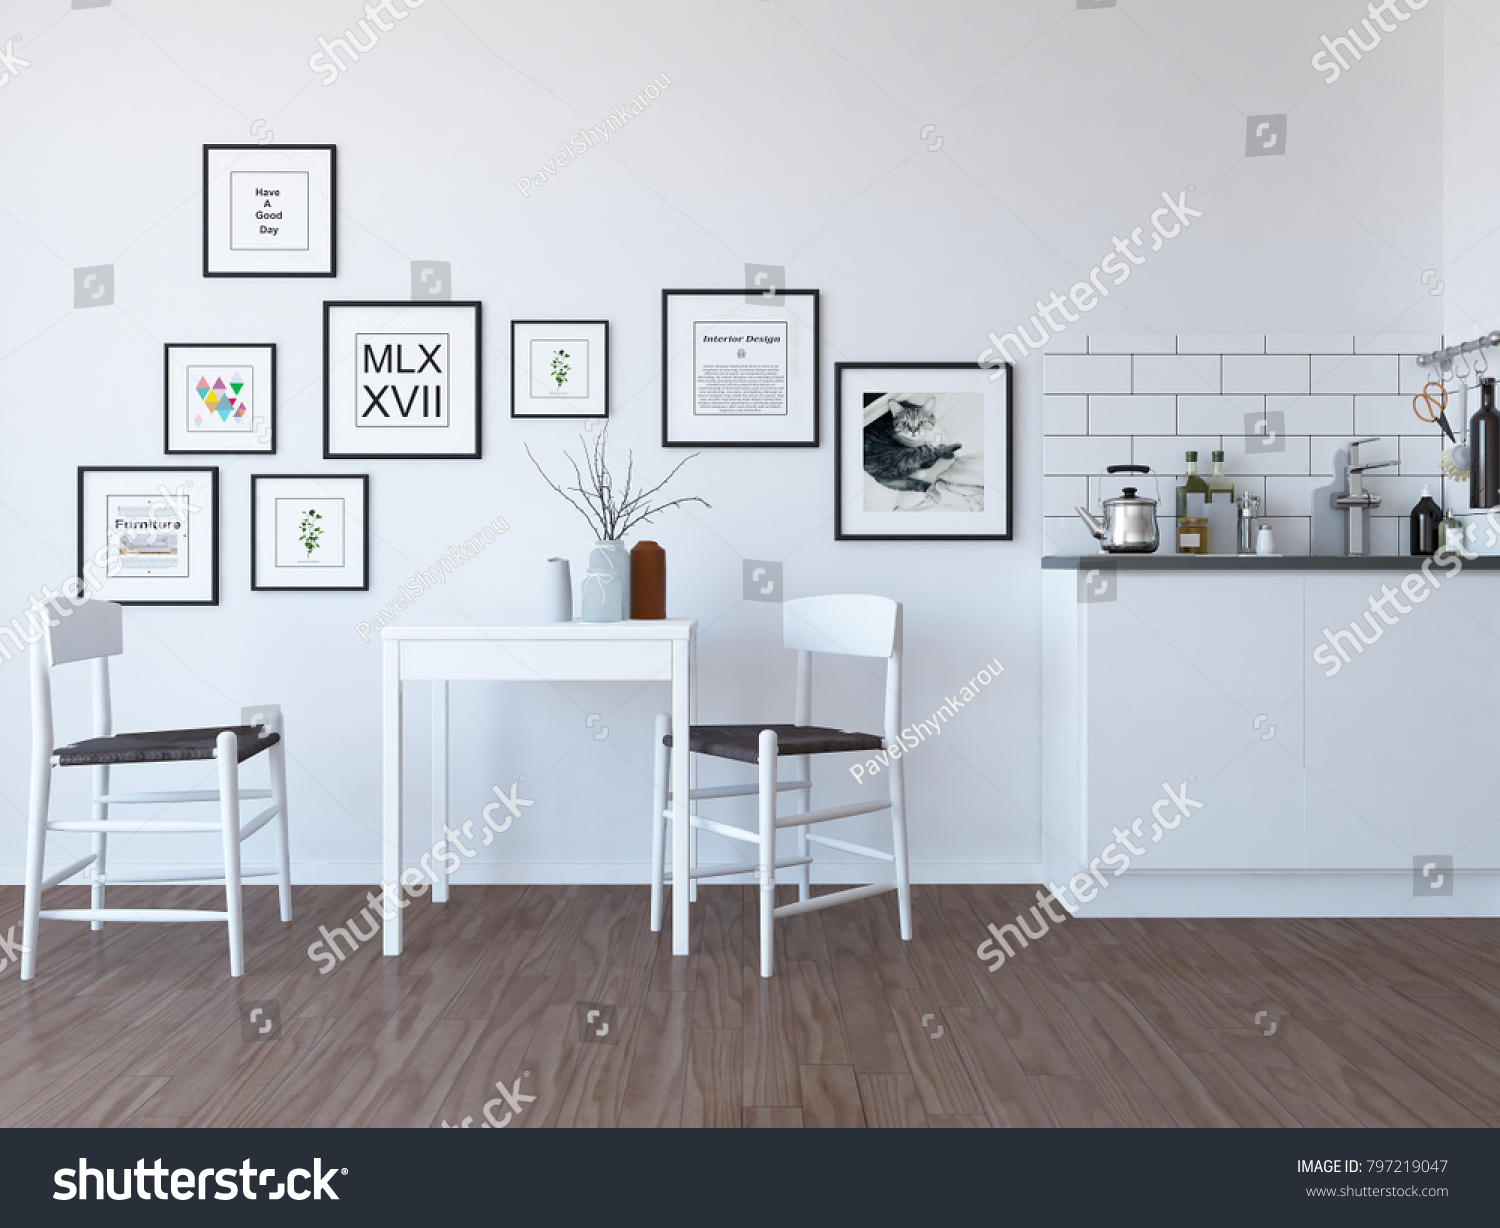 Idea of a white scandinavian kitchen room interior with pictures on ...